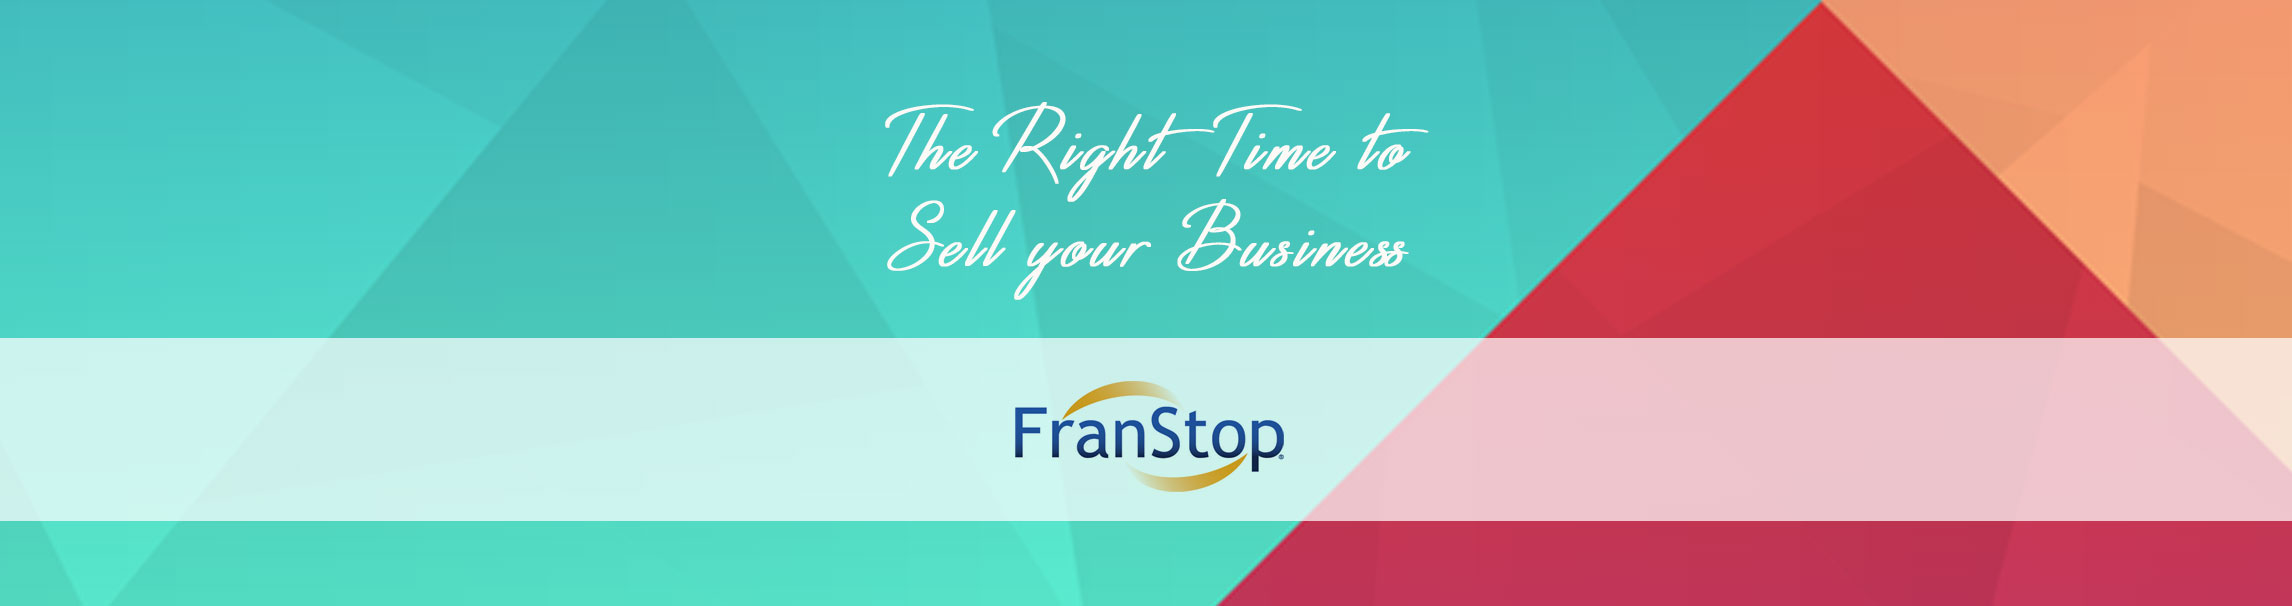 Sell_your_business_FranStop_franchise_for_sale